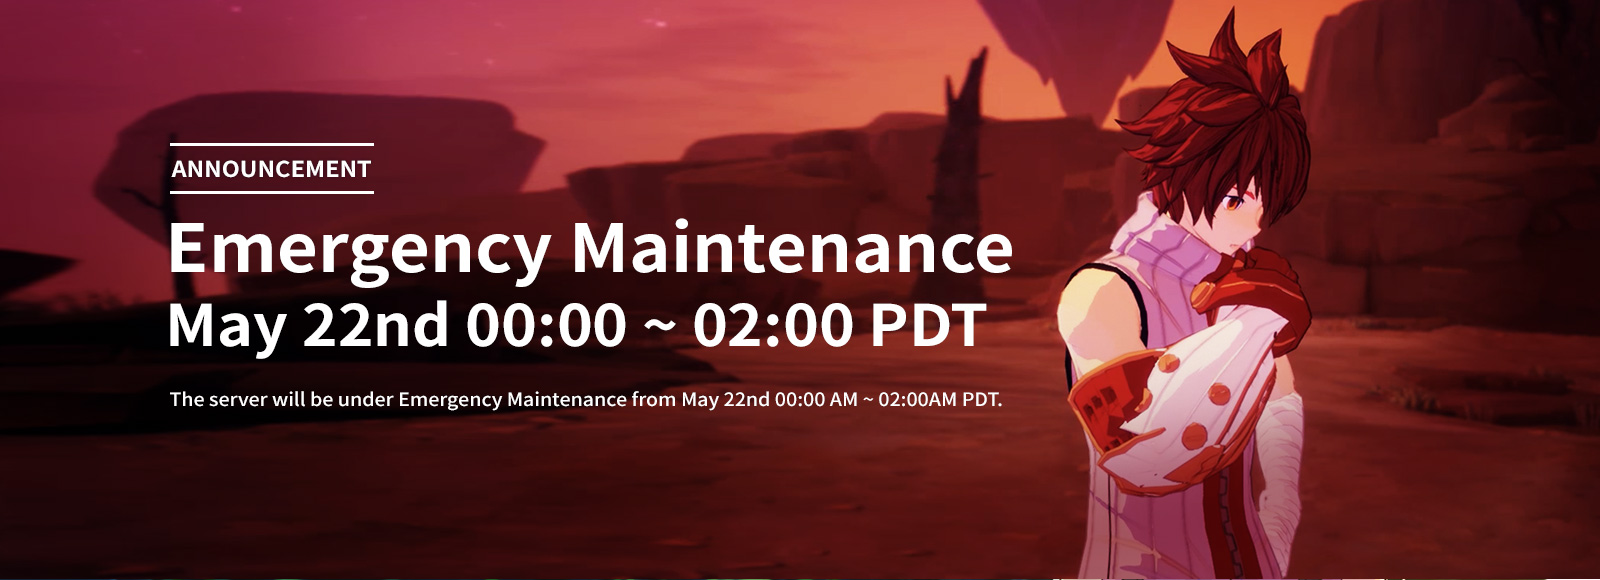 May 22nd Emergency Maintenance Announcement